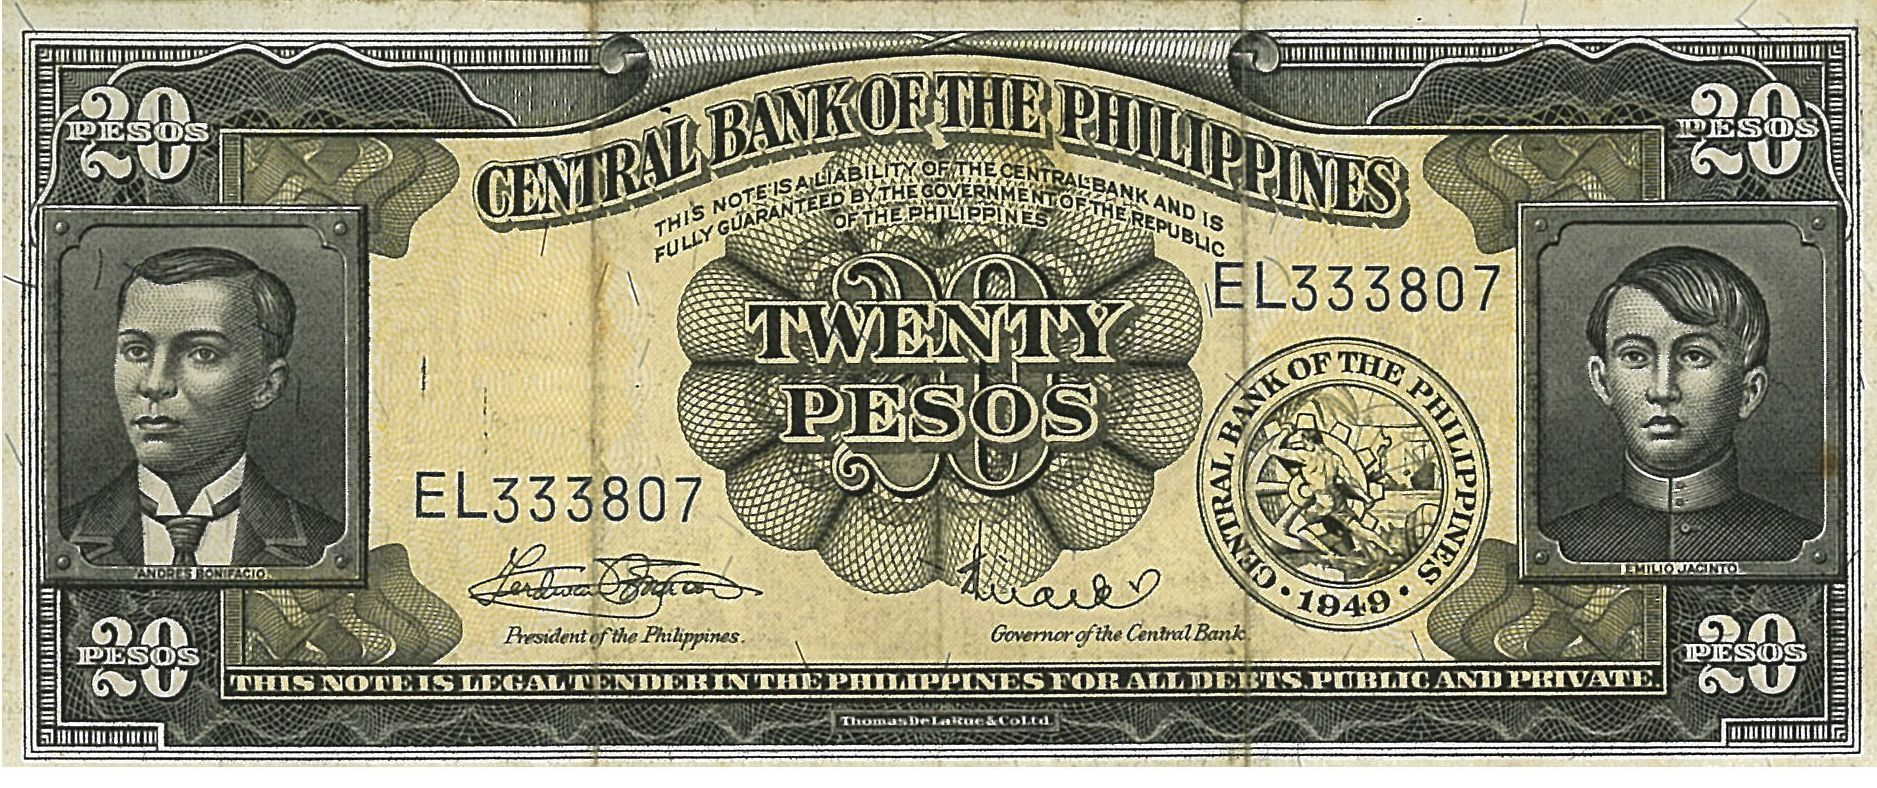 BSP Notes & Coins